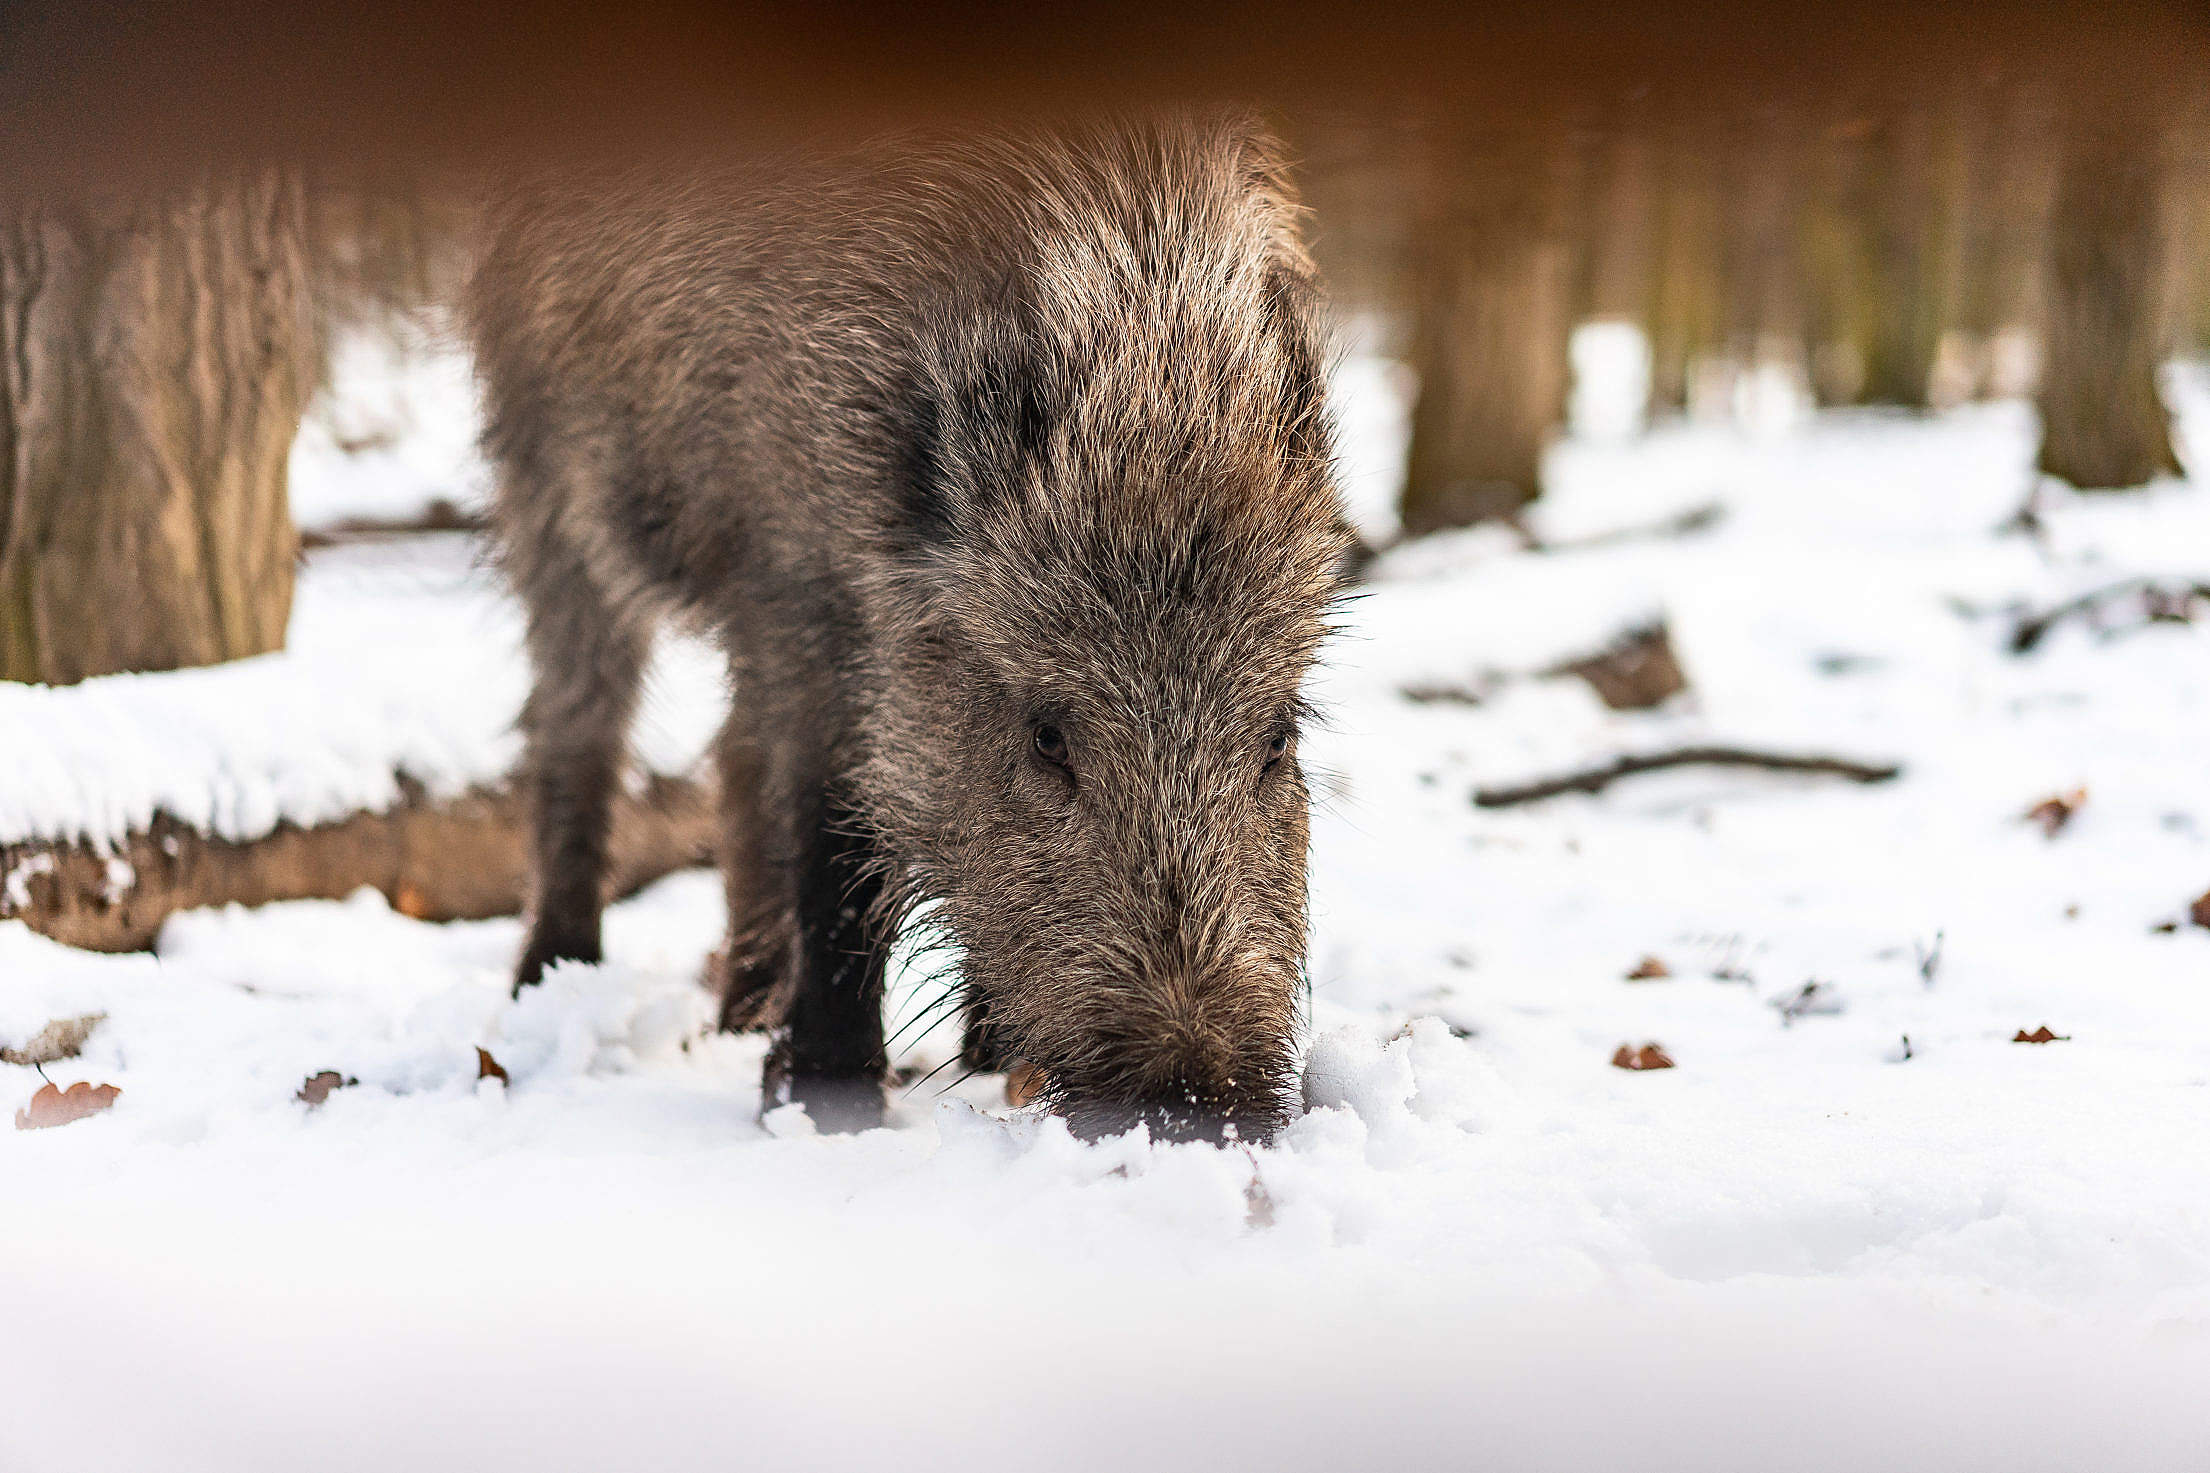 Wild Boar in Snow Free Stock Photo